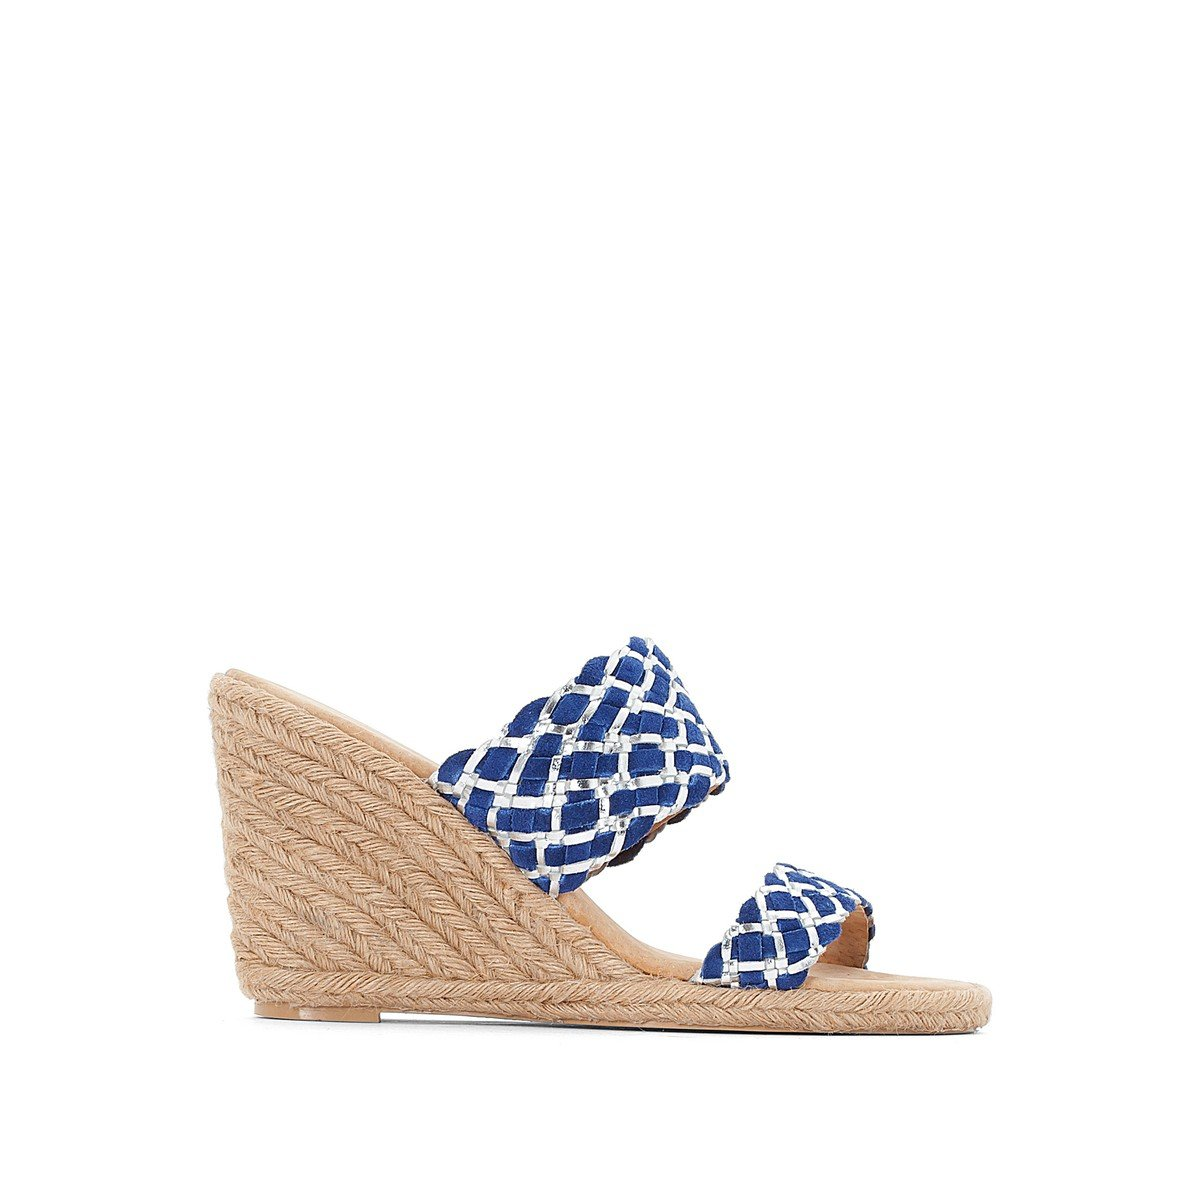 bas prix 880d1 c9e2e La Redoute Anne Weyburn Womens Suede Mules with Rope Wedge ...